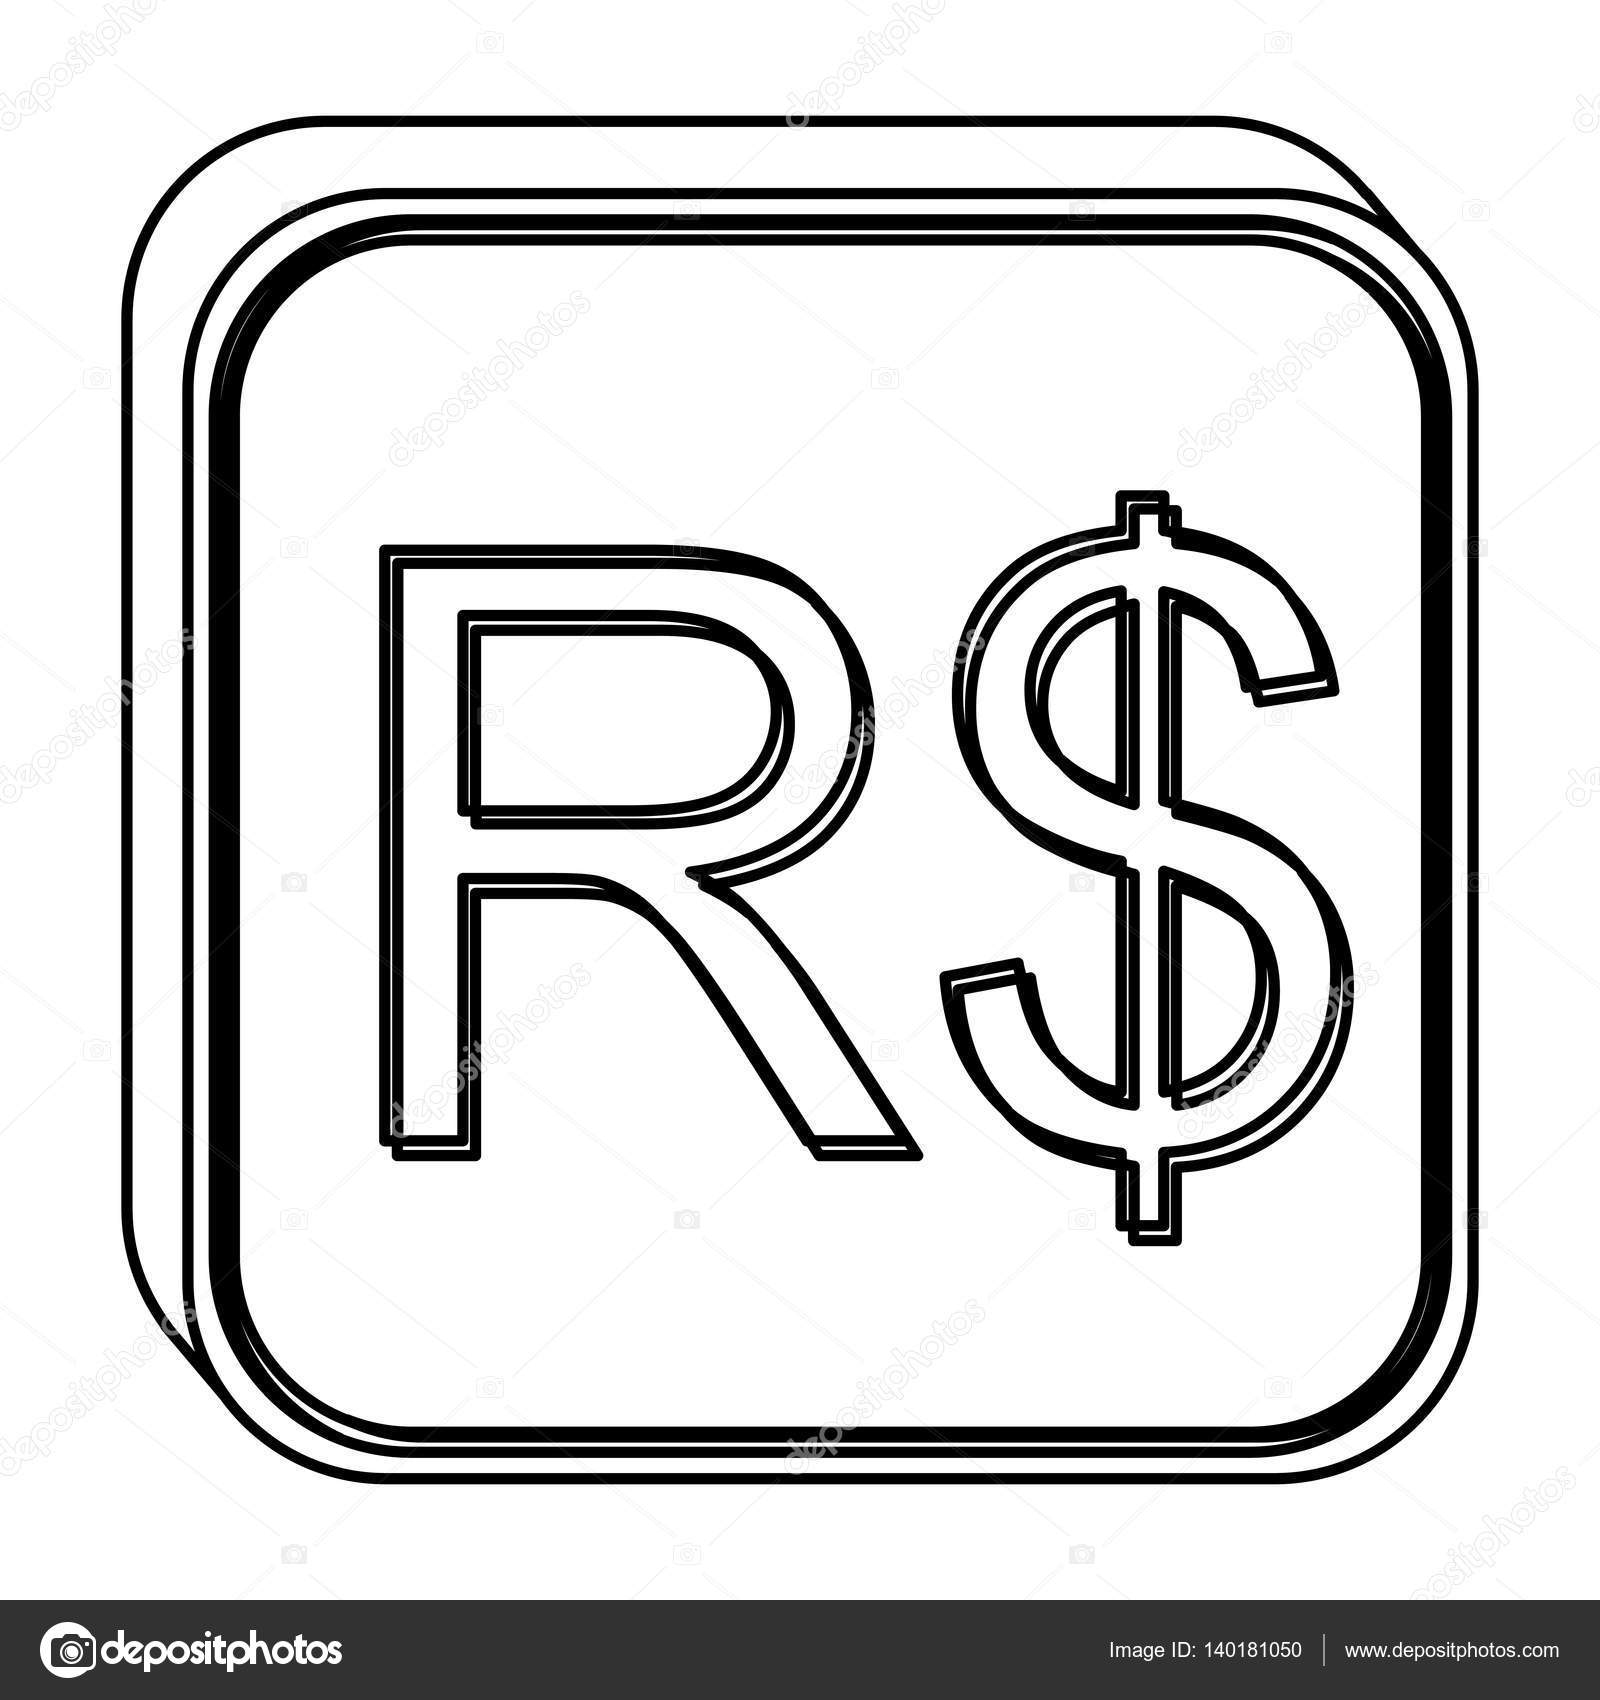 Monochrome Square Contour With Currency Symbol Of Brazilian Real